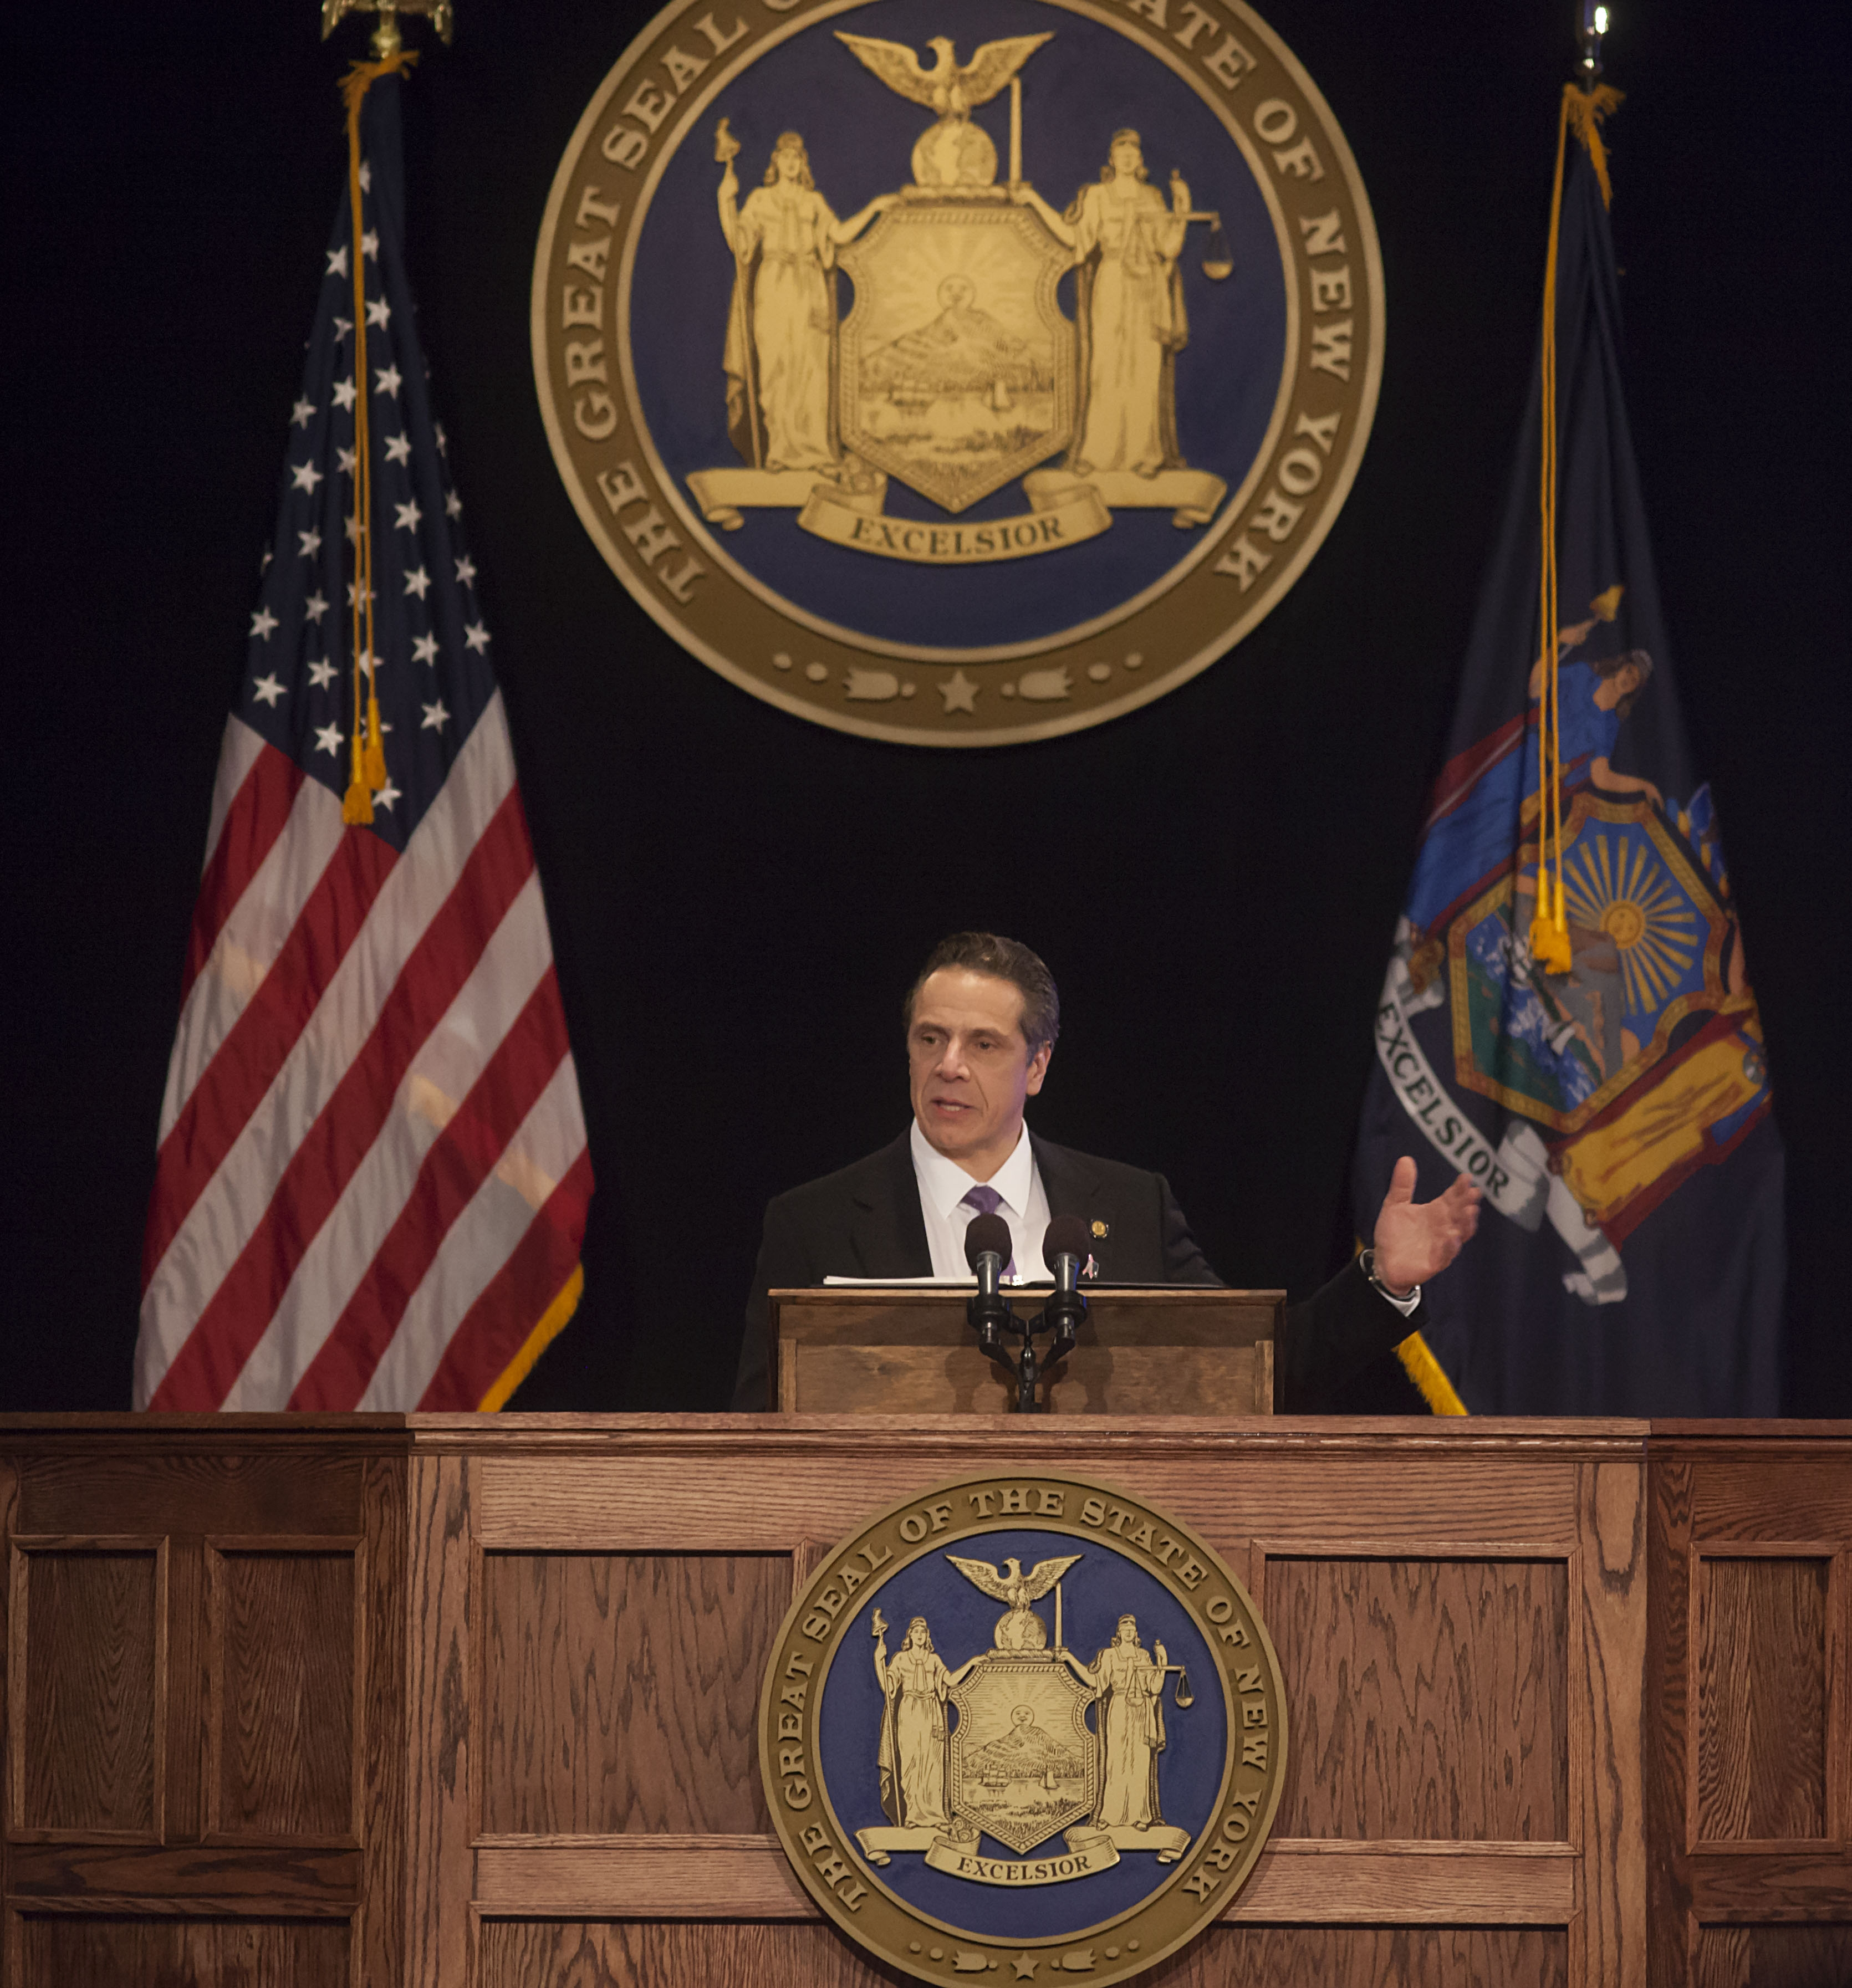 Gov. Andrew M. Cuomo offered a long list of spending proposals while still keeping the state budget increase below 2 percent.